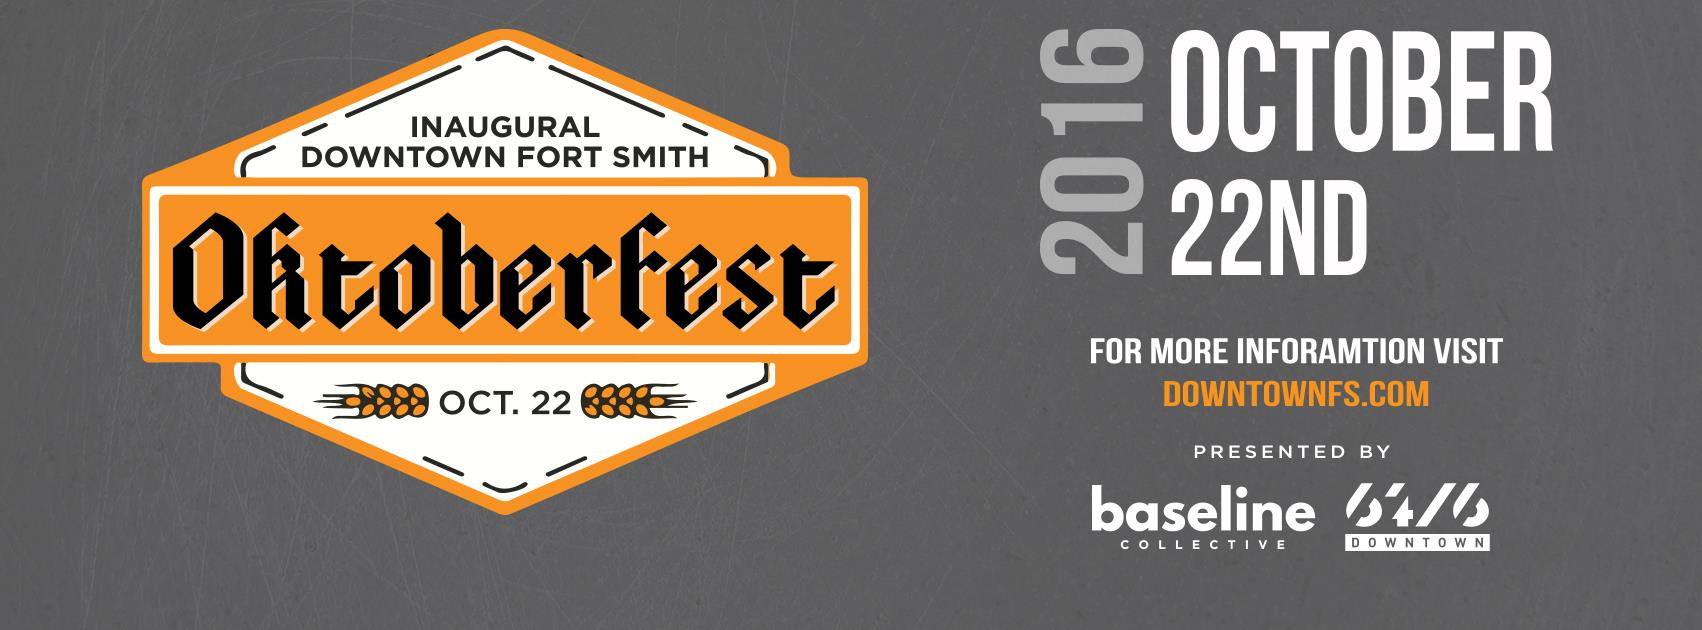 Fort Smith Oktoberfest Things To Do In Fort Smith